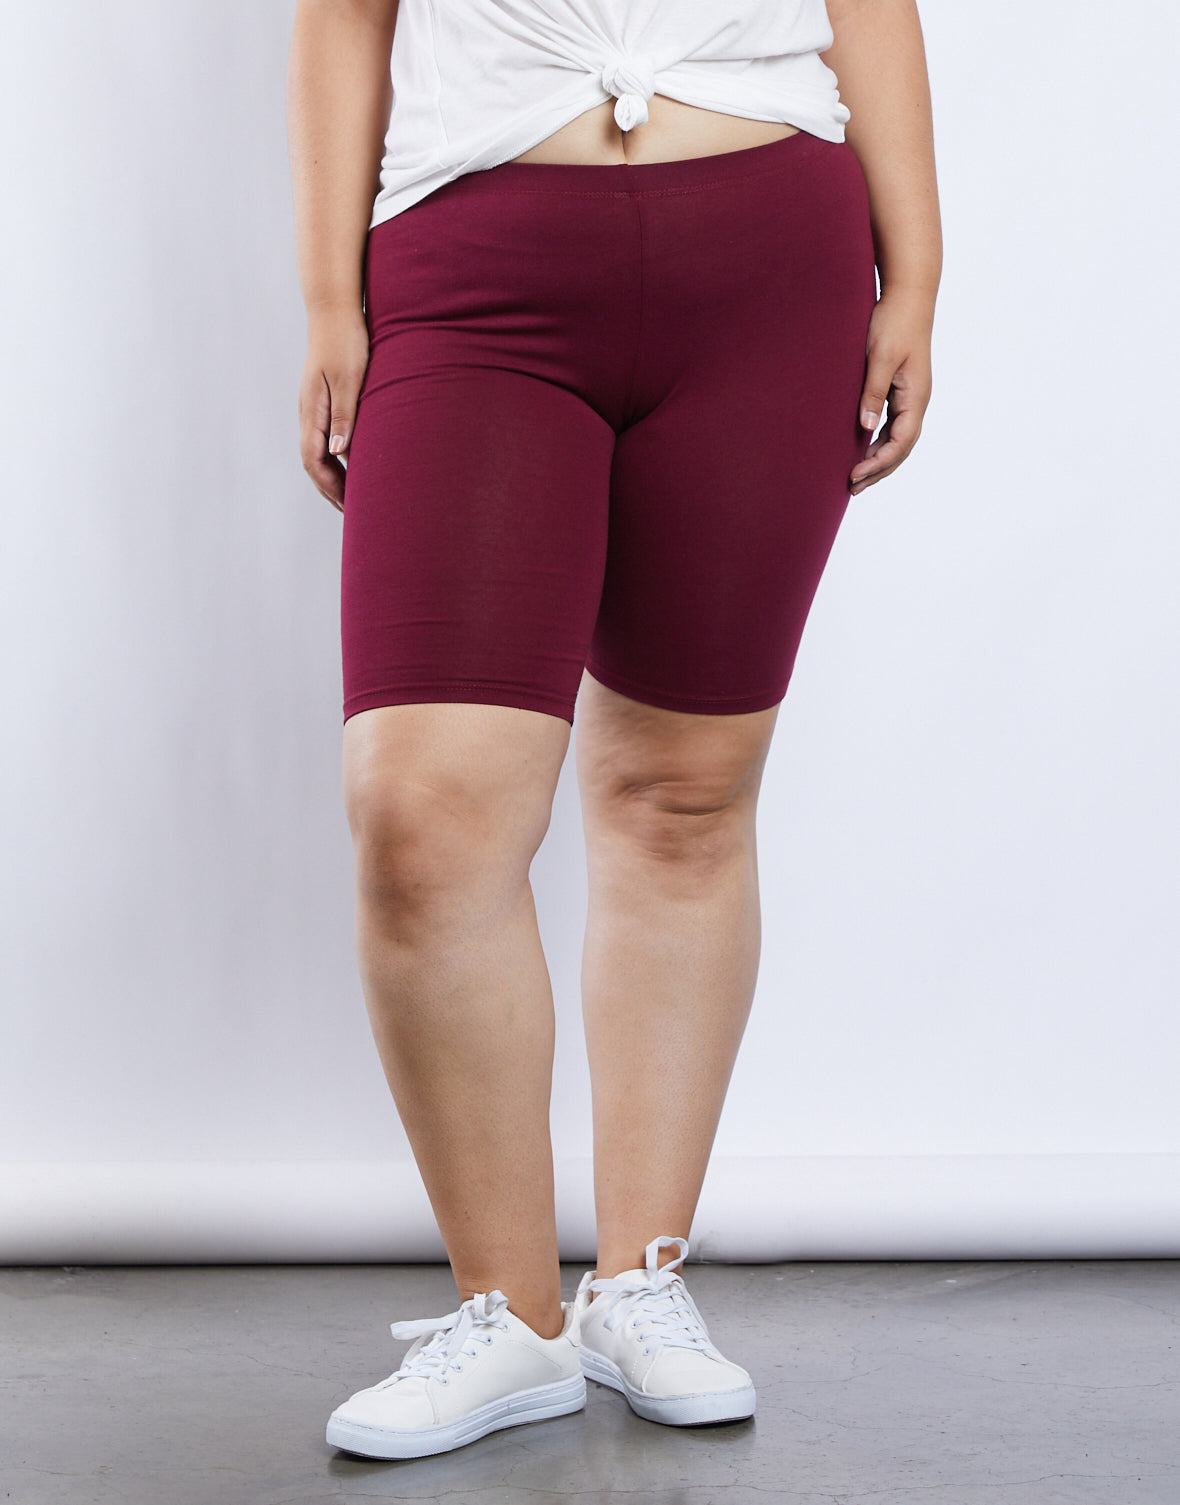 Plus Size Simple Bike Shorts